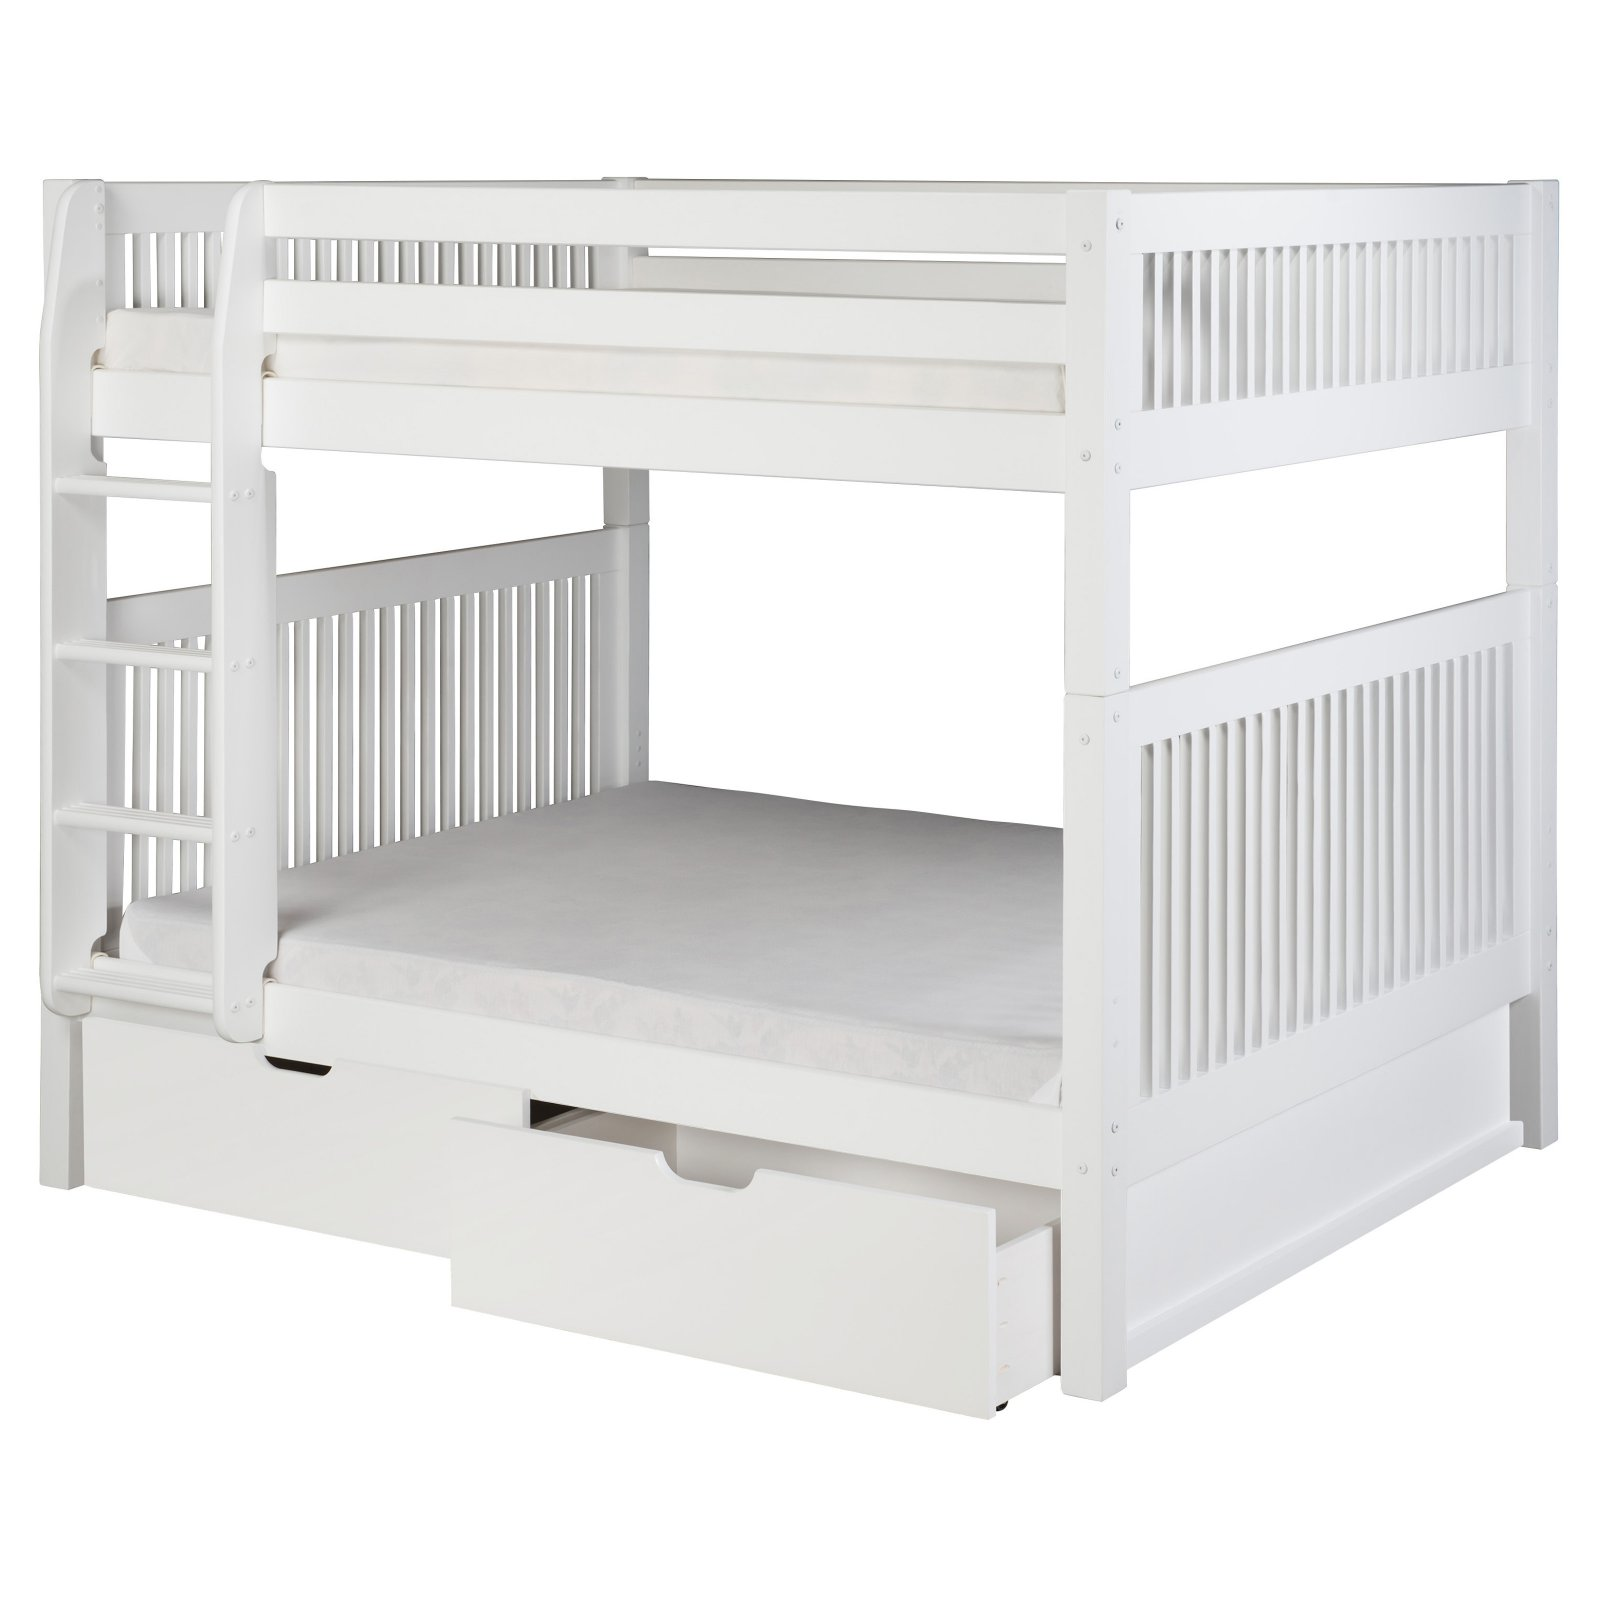 Camaflexi Mission Headboard Full over Full Bunk Bed by Eco-Flex